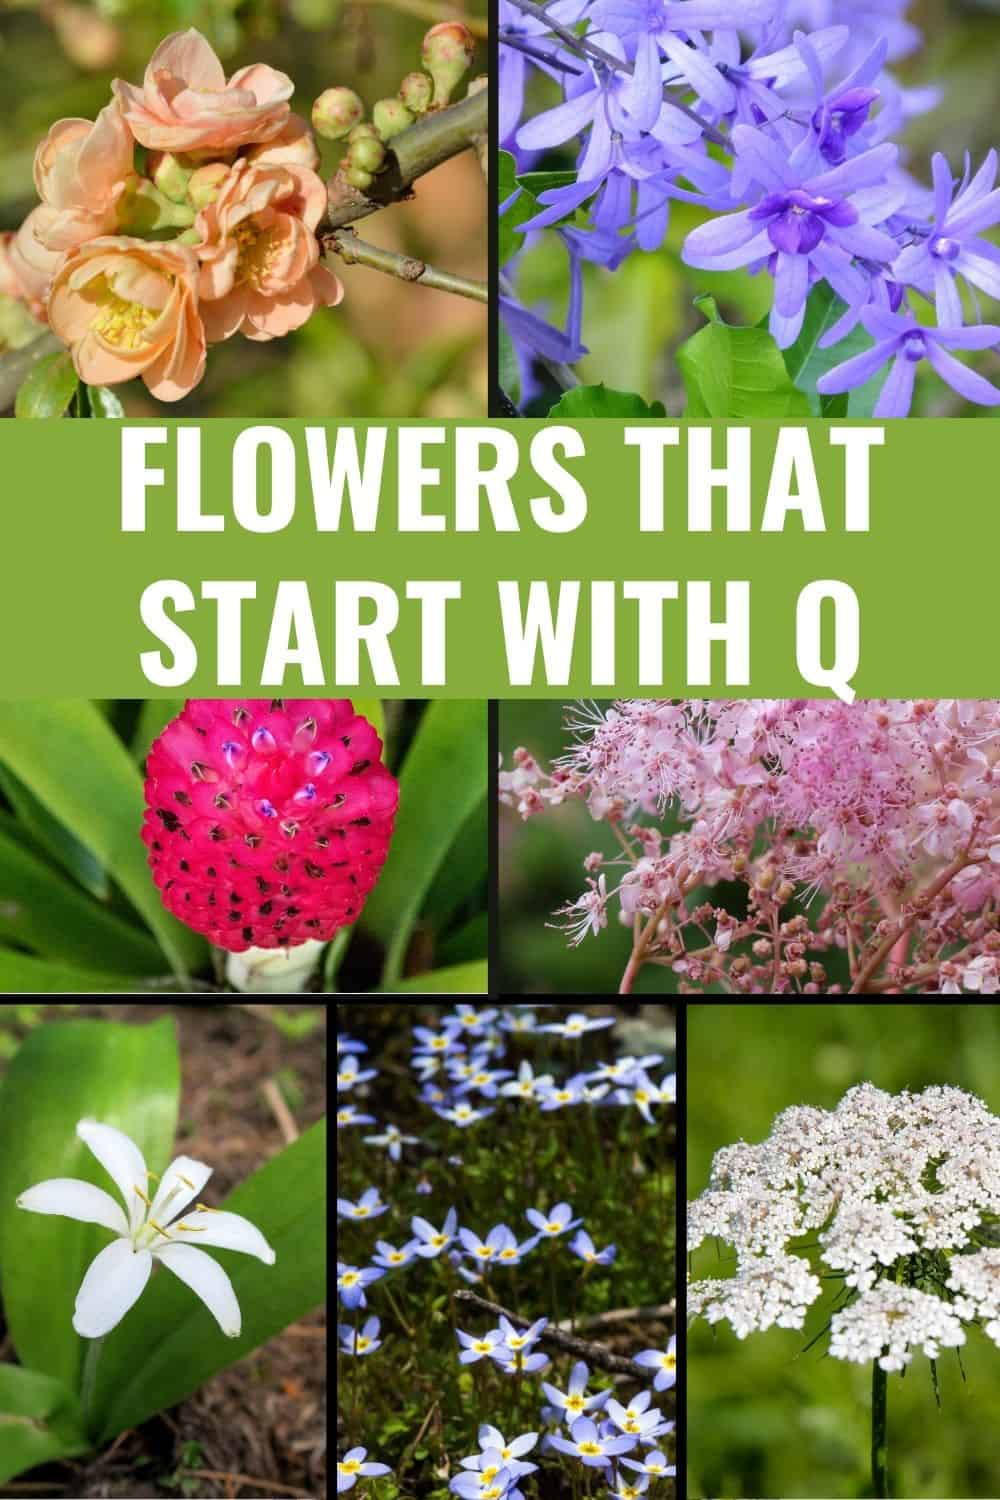 Flowers that start with q